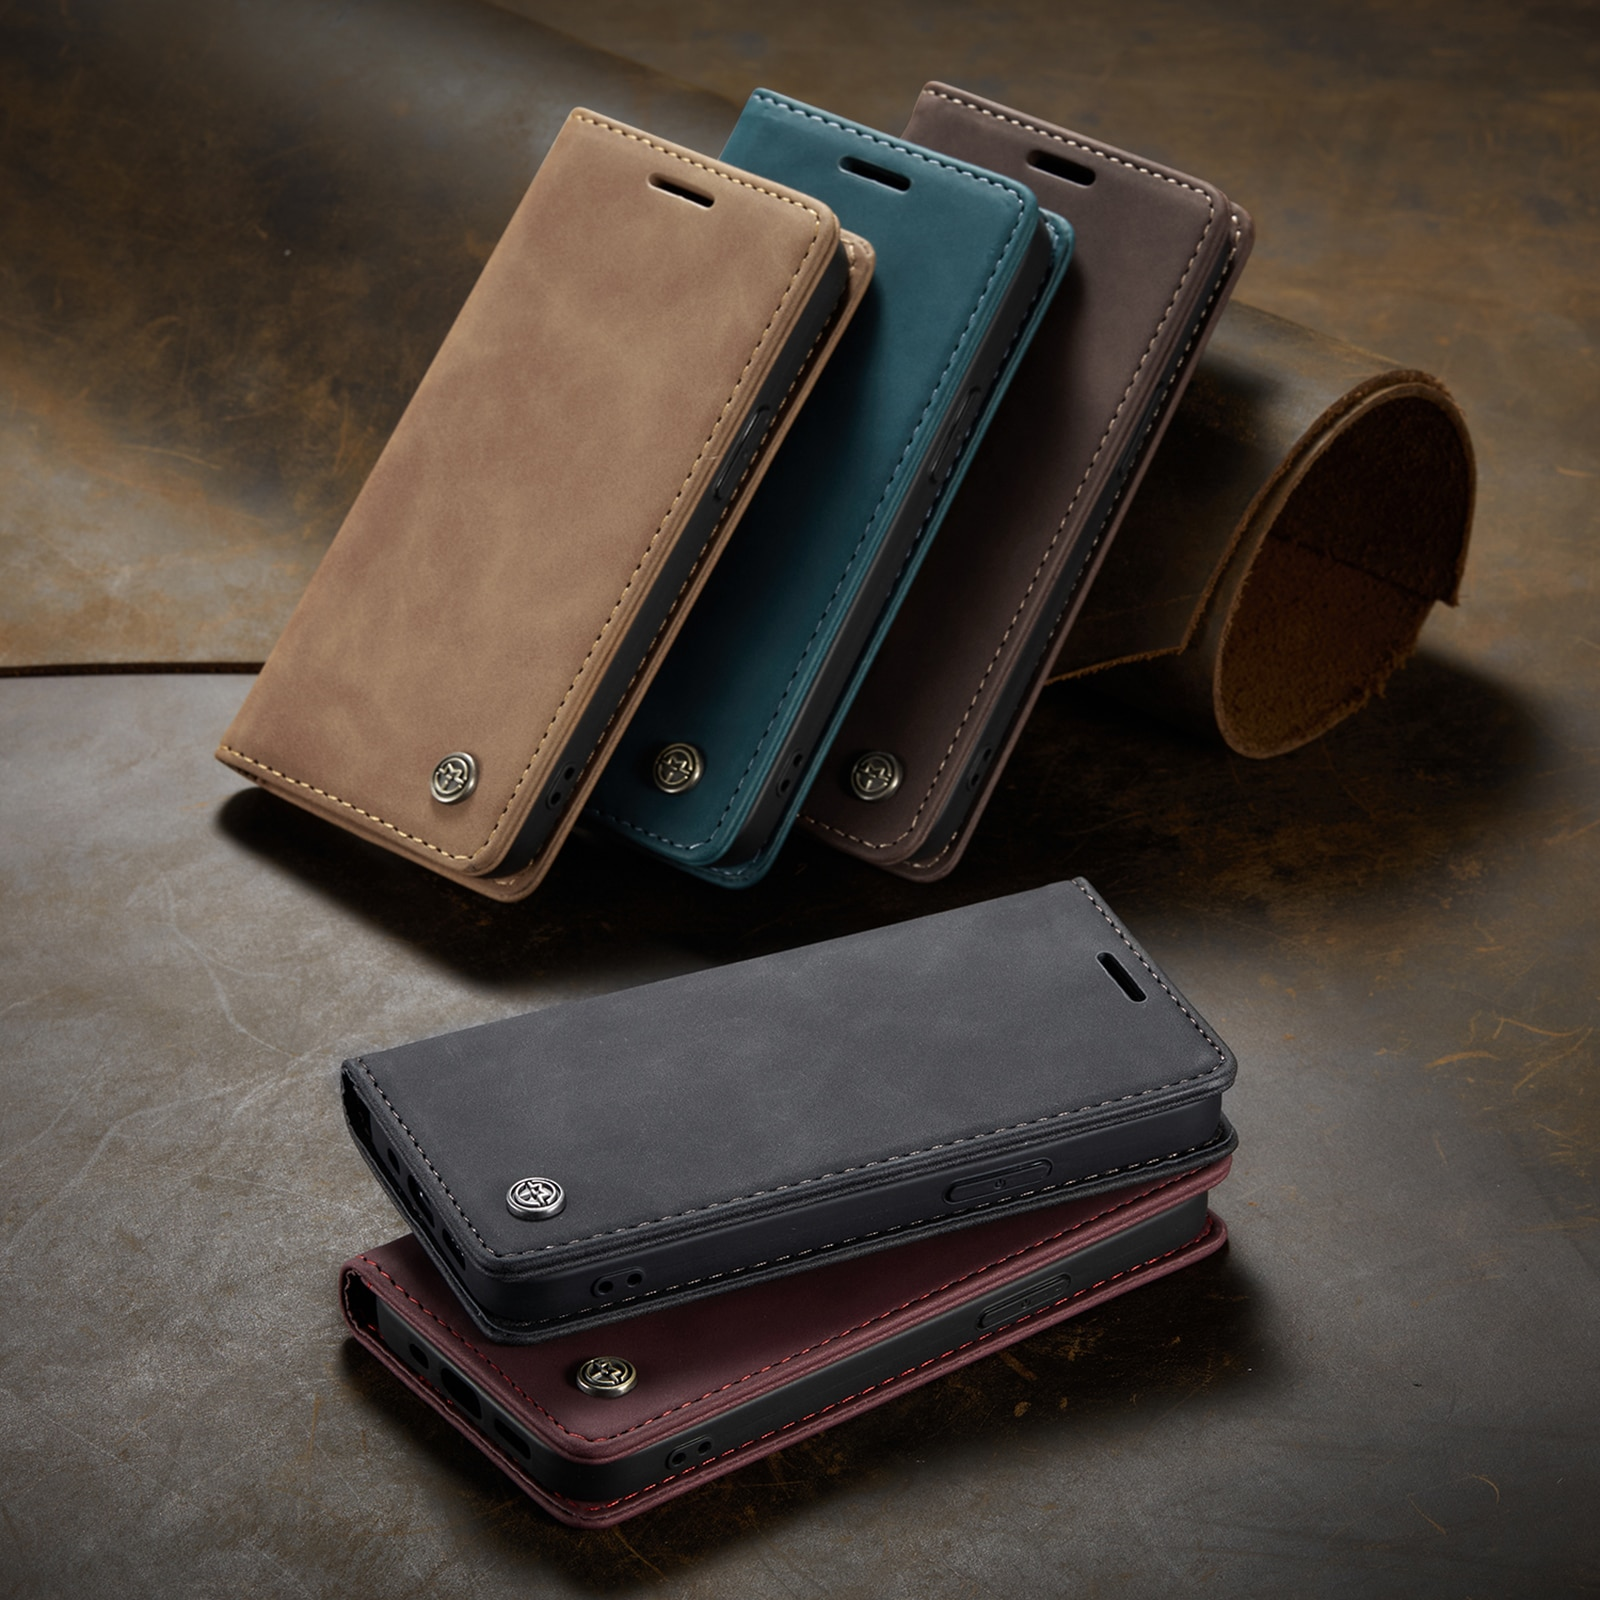 Hf1759b9499fa4473807b5569b88f256fL - Magnetic Leather Flip Case For iPhone 12 / Pro / Pro Max PU Leather Fitted Bumper Soft Retro Flip Case Book Wallet Cover